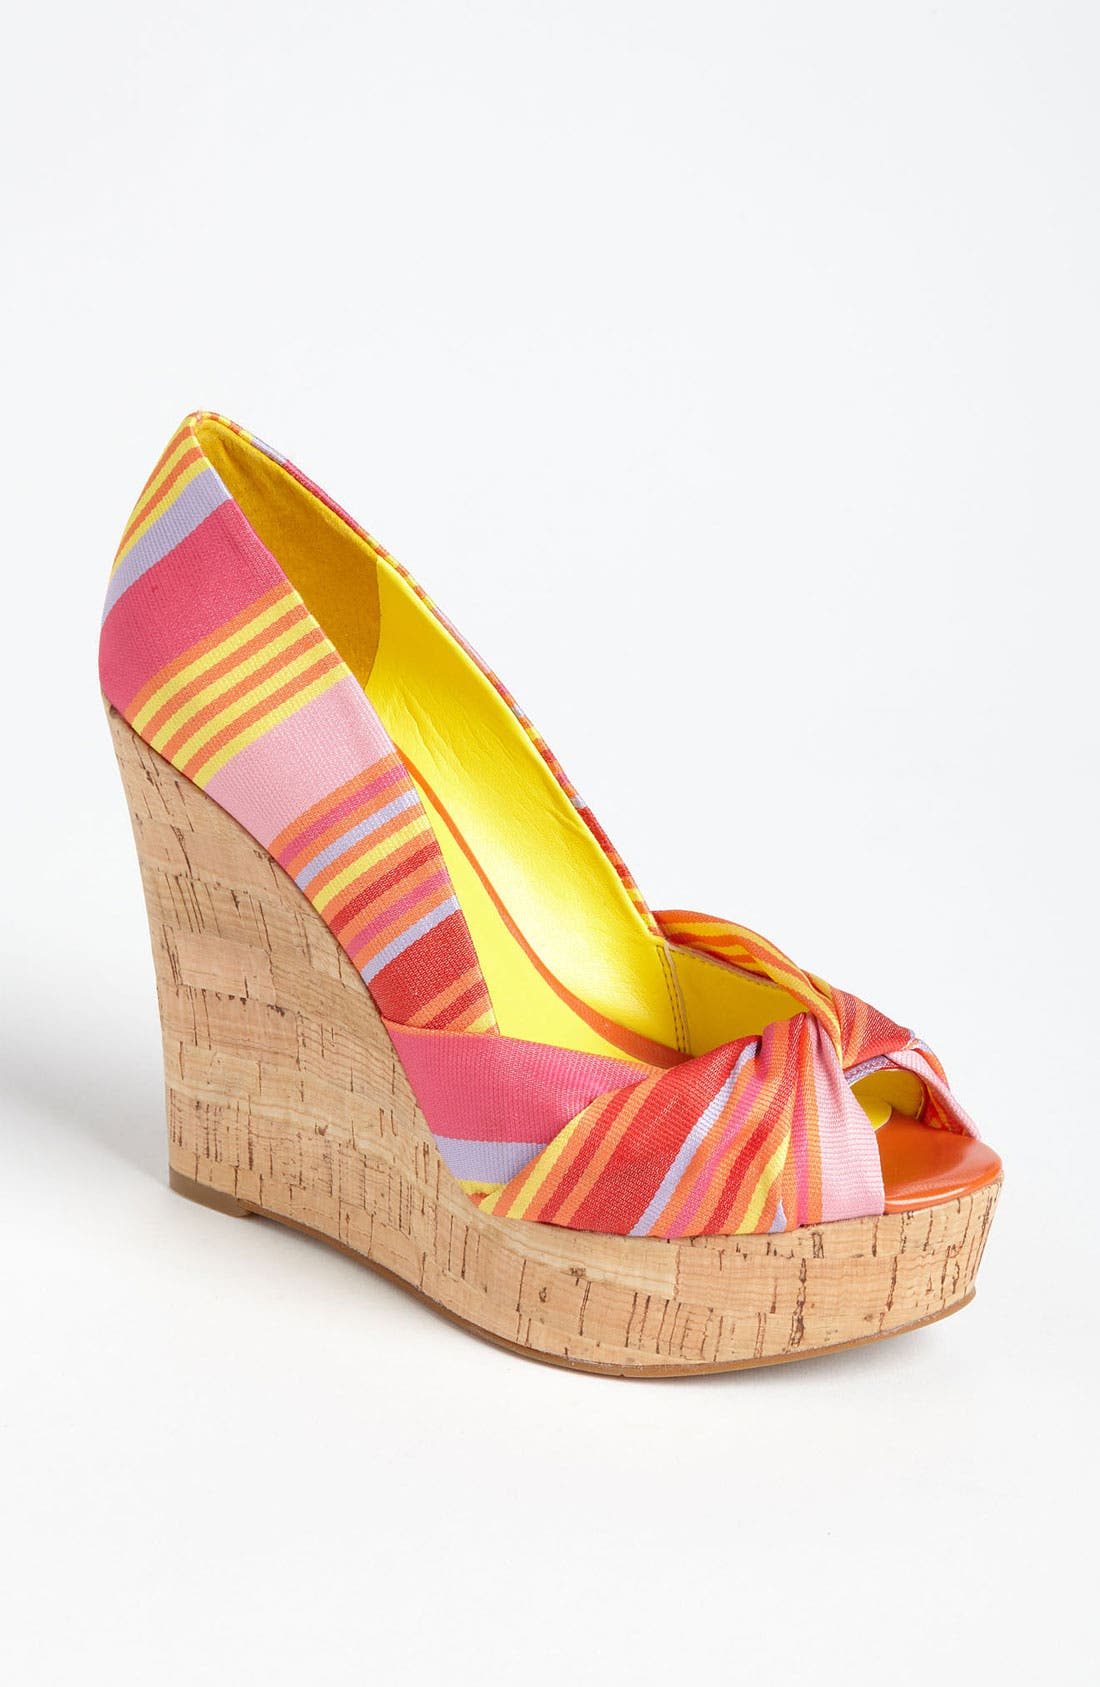 Main Image - Nine West 'Chillpill' Sandal